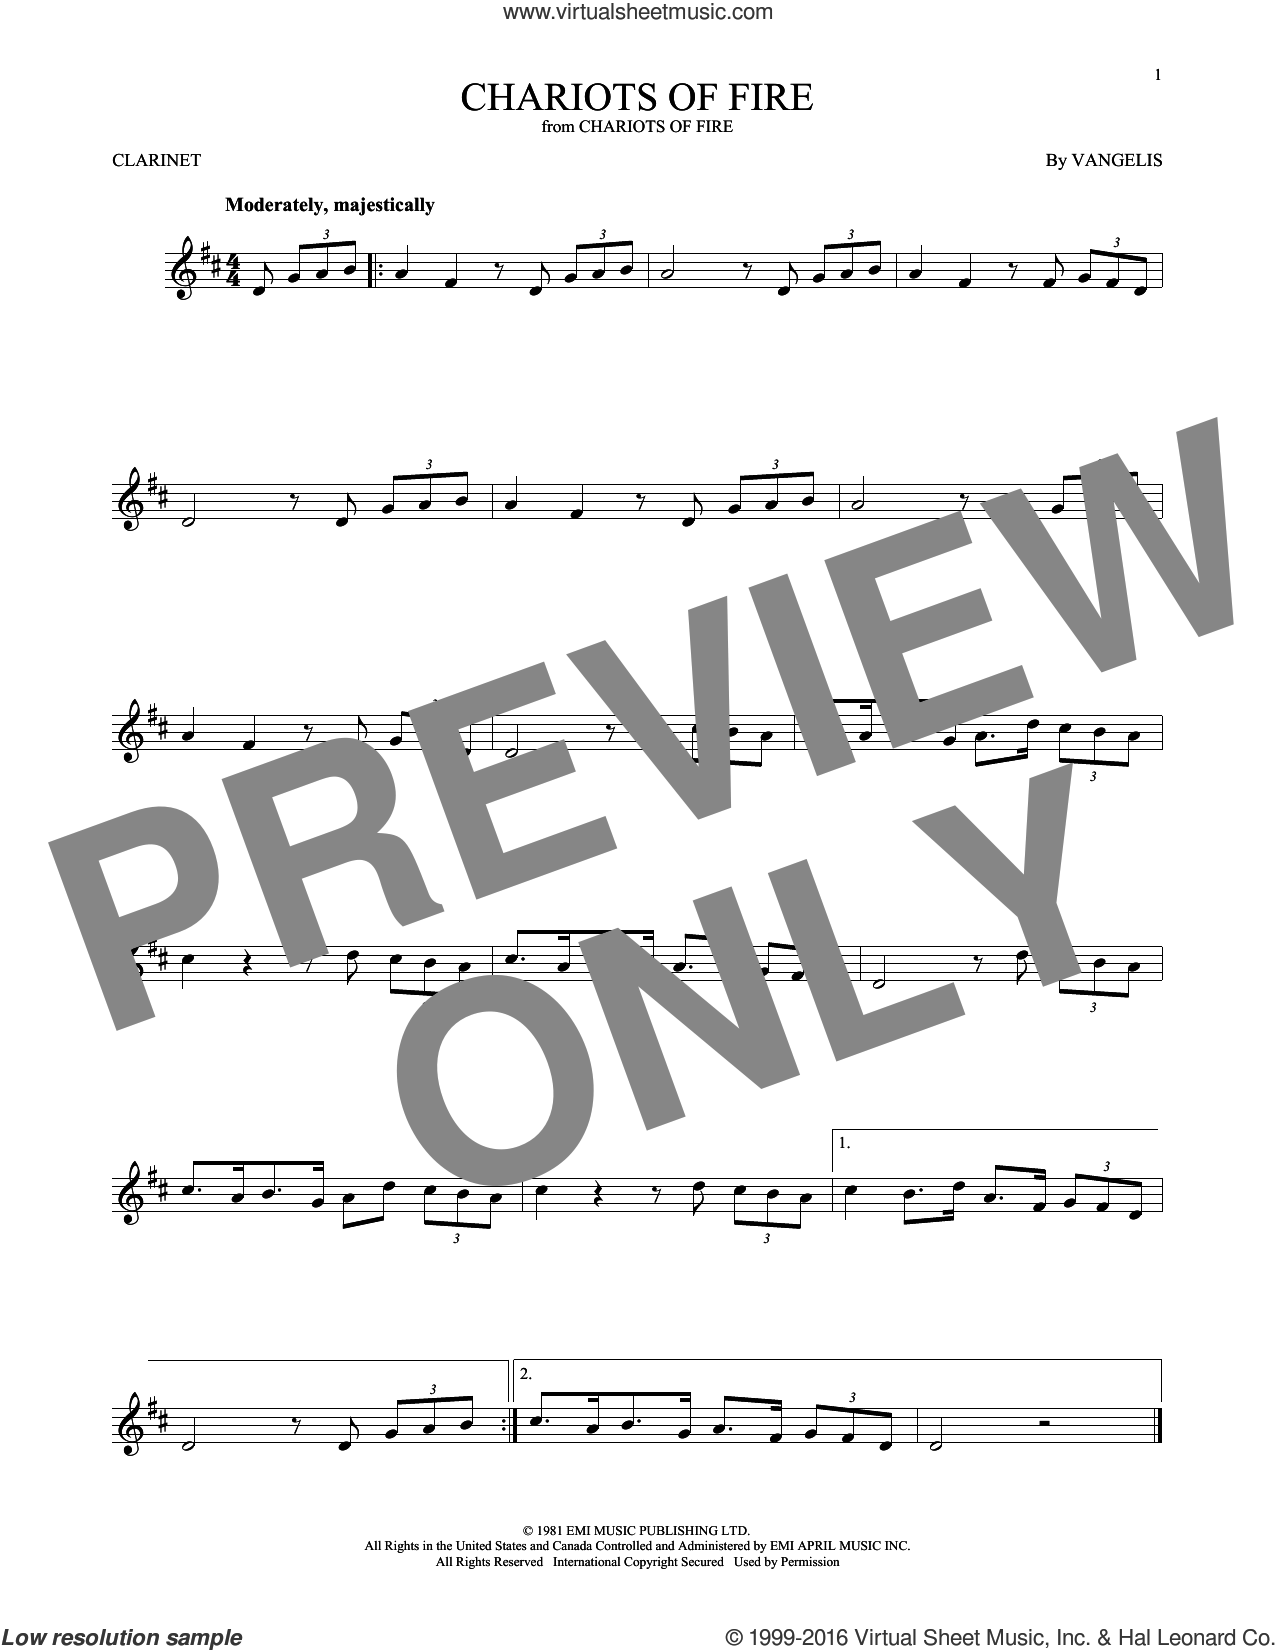 Chariots Of Fire sheet music for clarinet solo by Vangelis, intermediate skill level